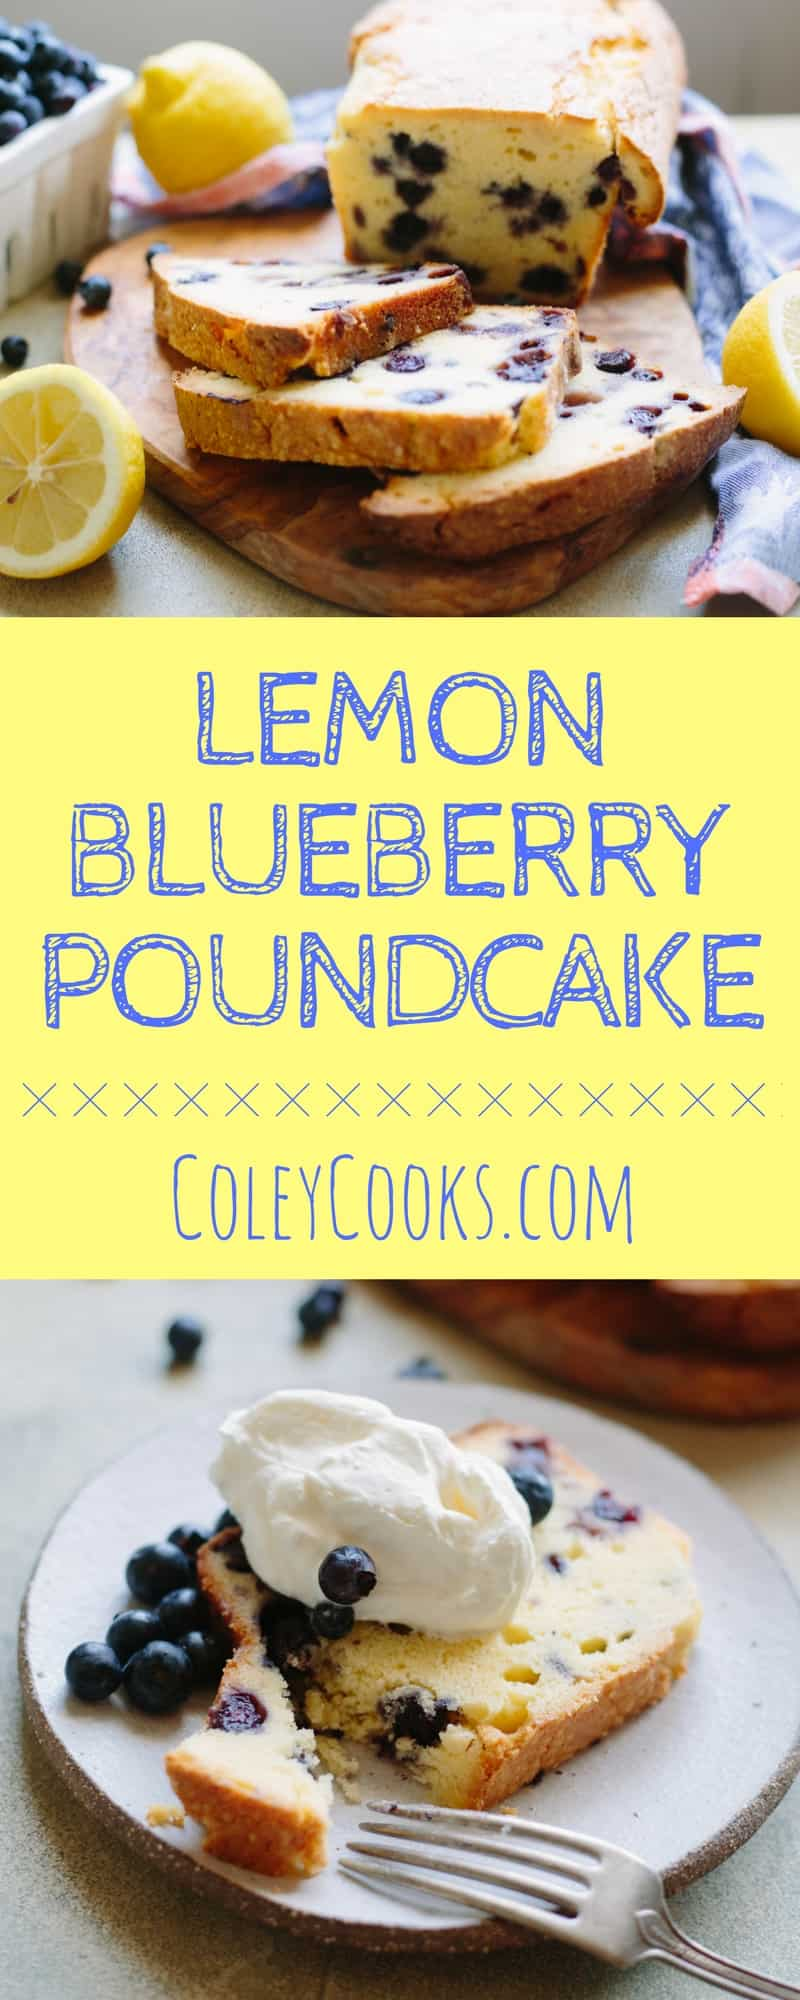 Lemon Blueberry Pound Cake | ColeyCooks.com